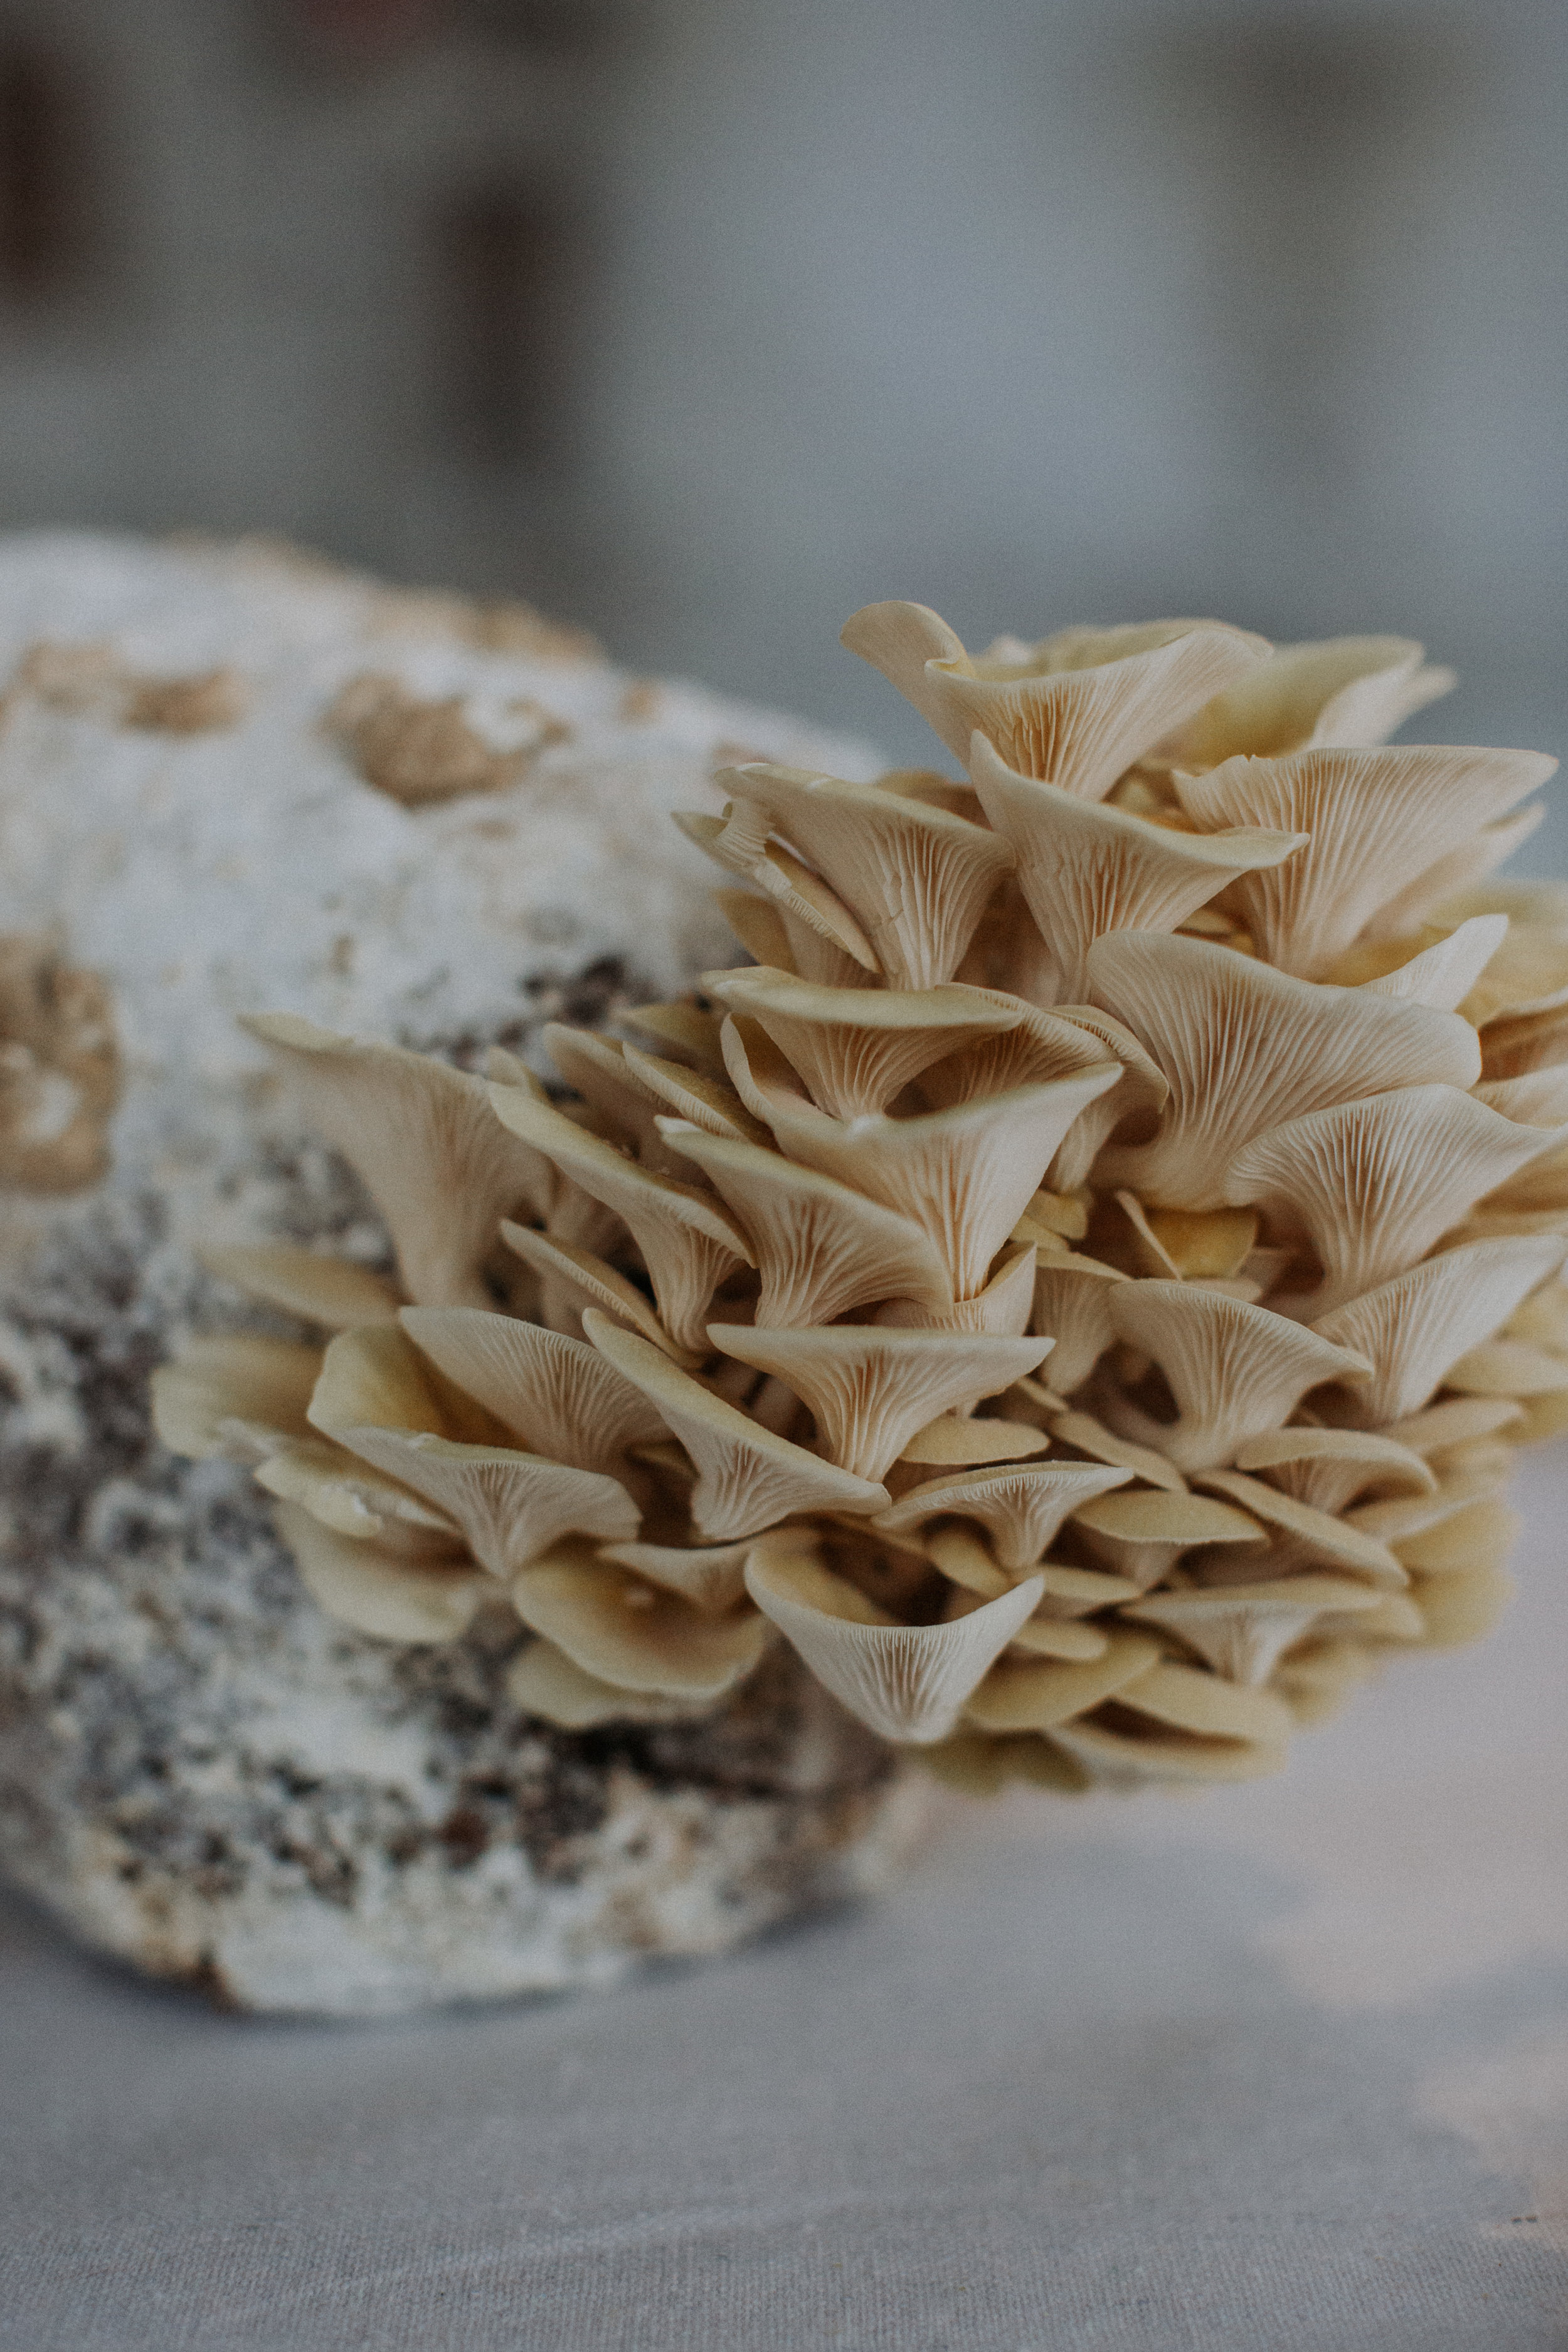 Golden Oyster  - Delicate and light in both flavor and texture.